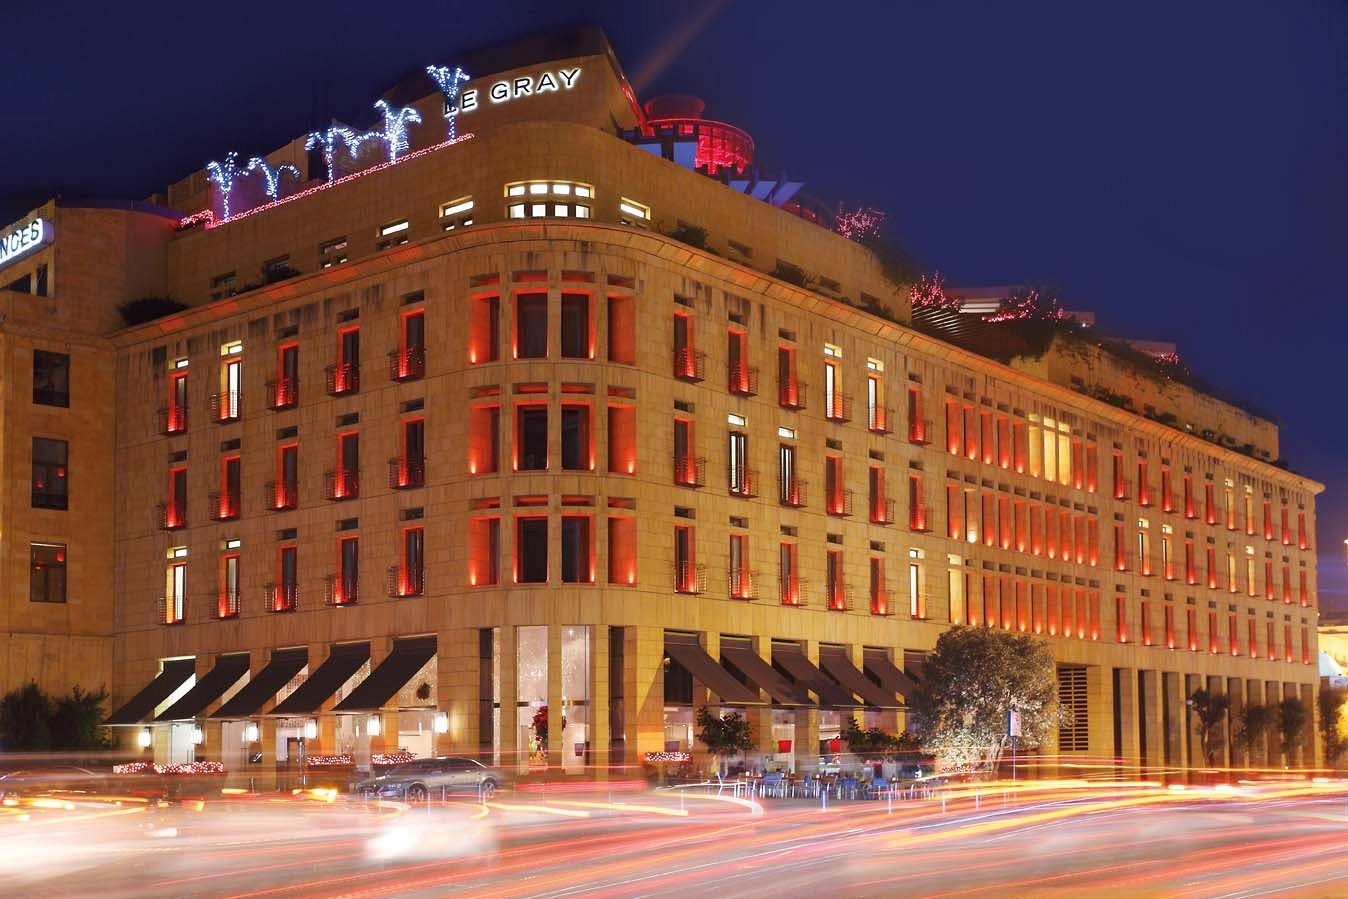 Le Gray Beirut - located in central Beirut